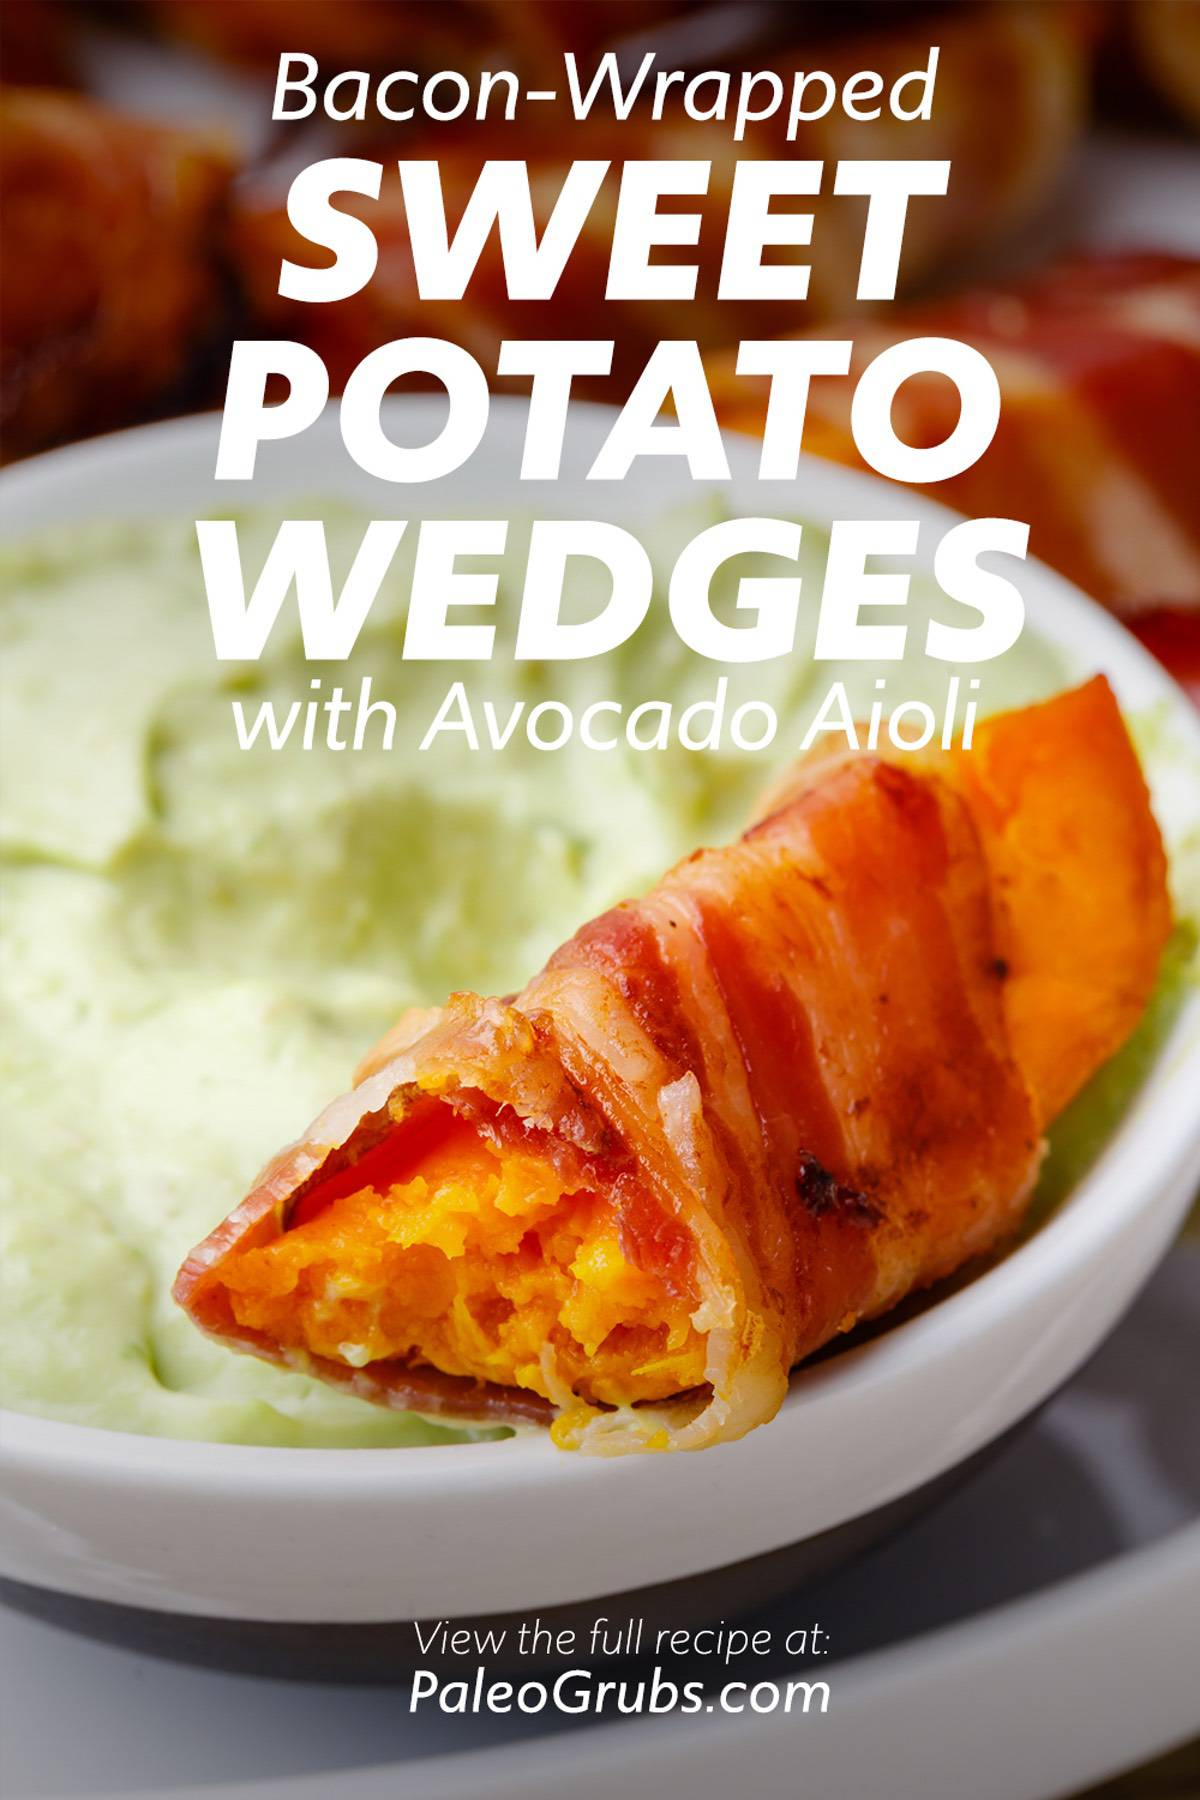 Bacon-Wrapped Sweet Potato Wedges with Avocado Aioli